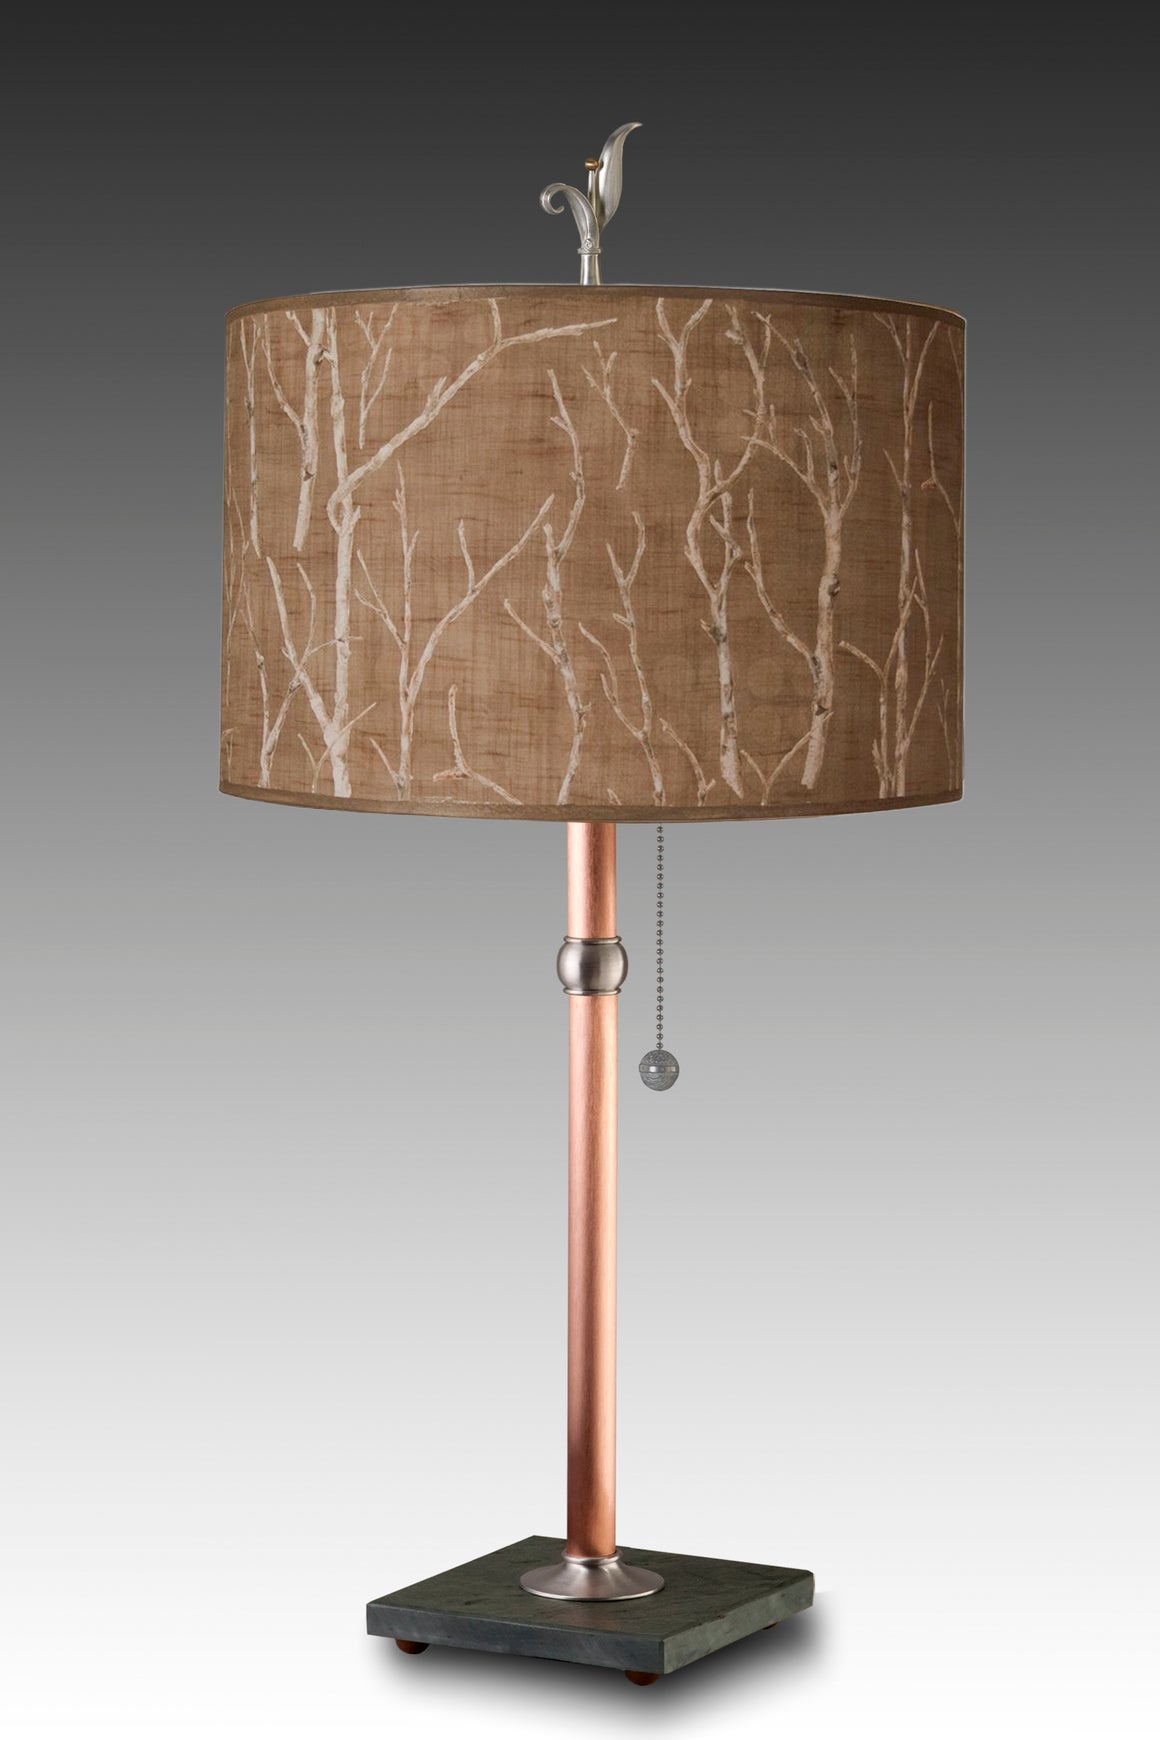 Copper Table Lamp with Large Drum Shade in Twigs